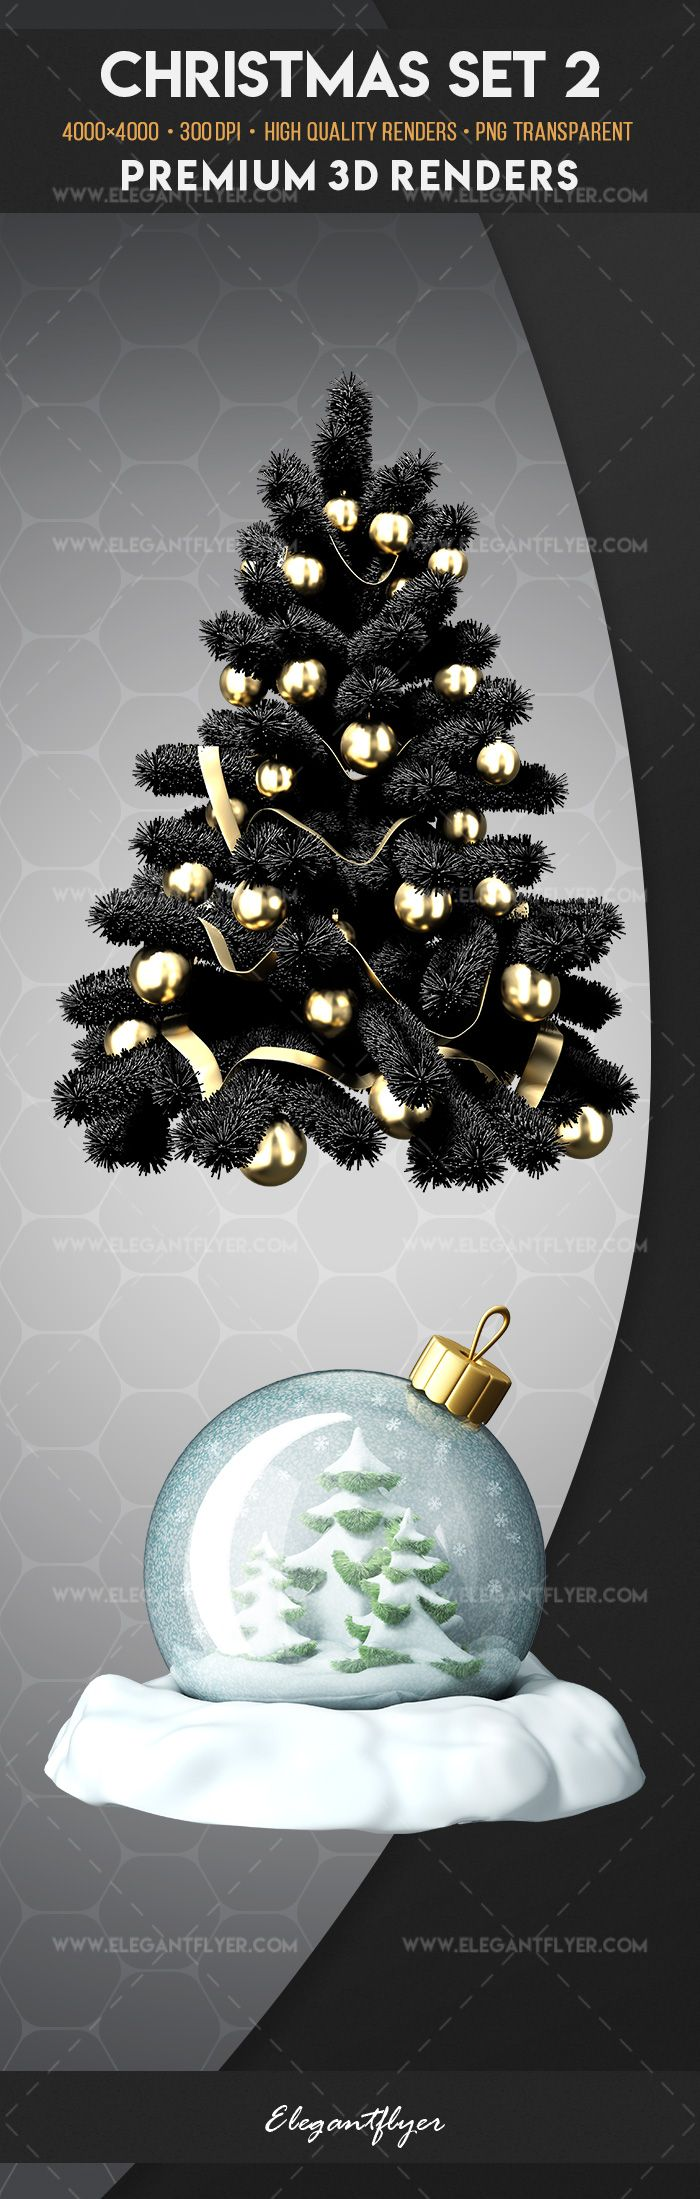 Christmas Set 2 – Premium 3d Render Templates